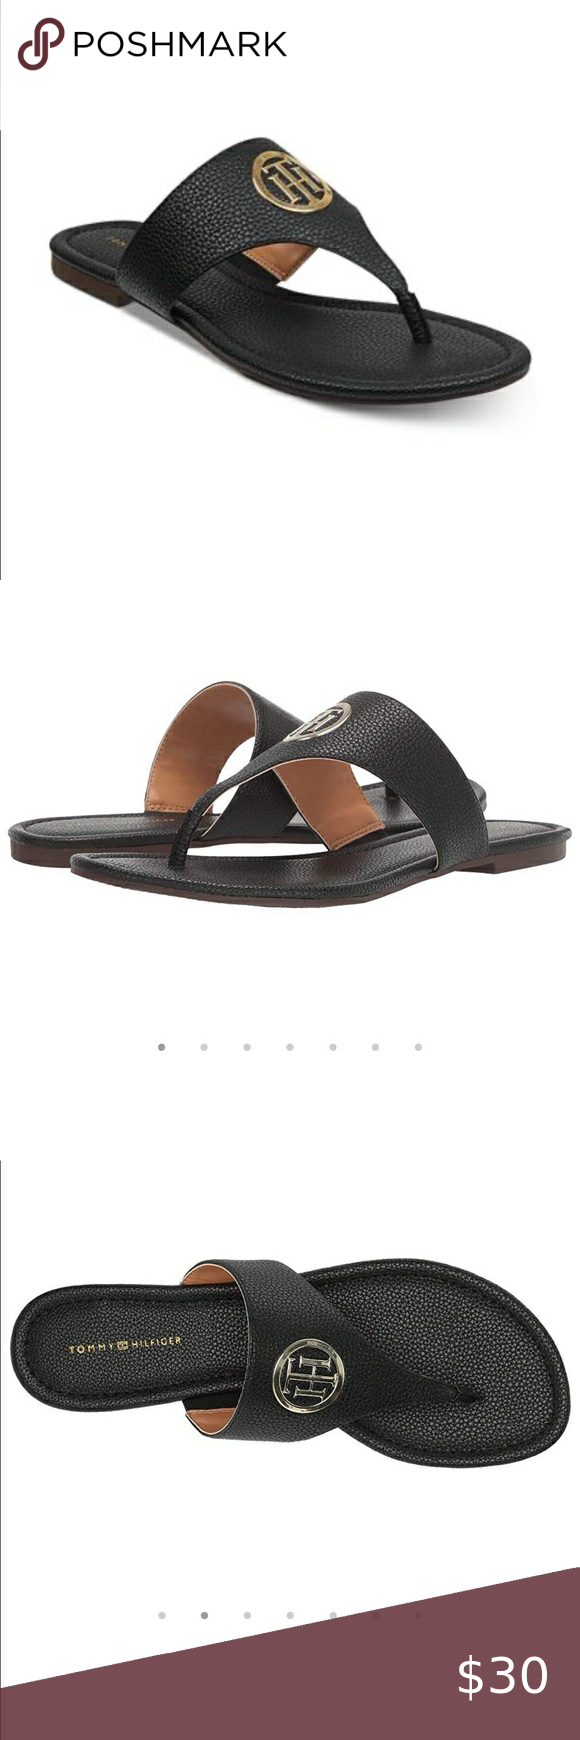 Sinder Thong Sandals Tommy Hilfiger Womens